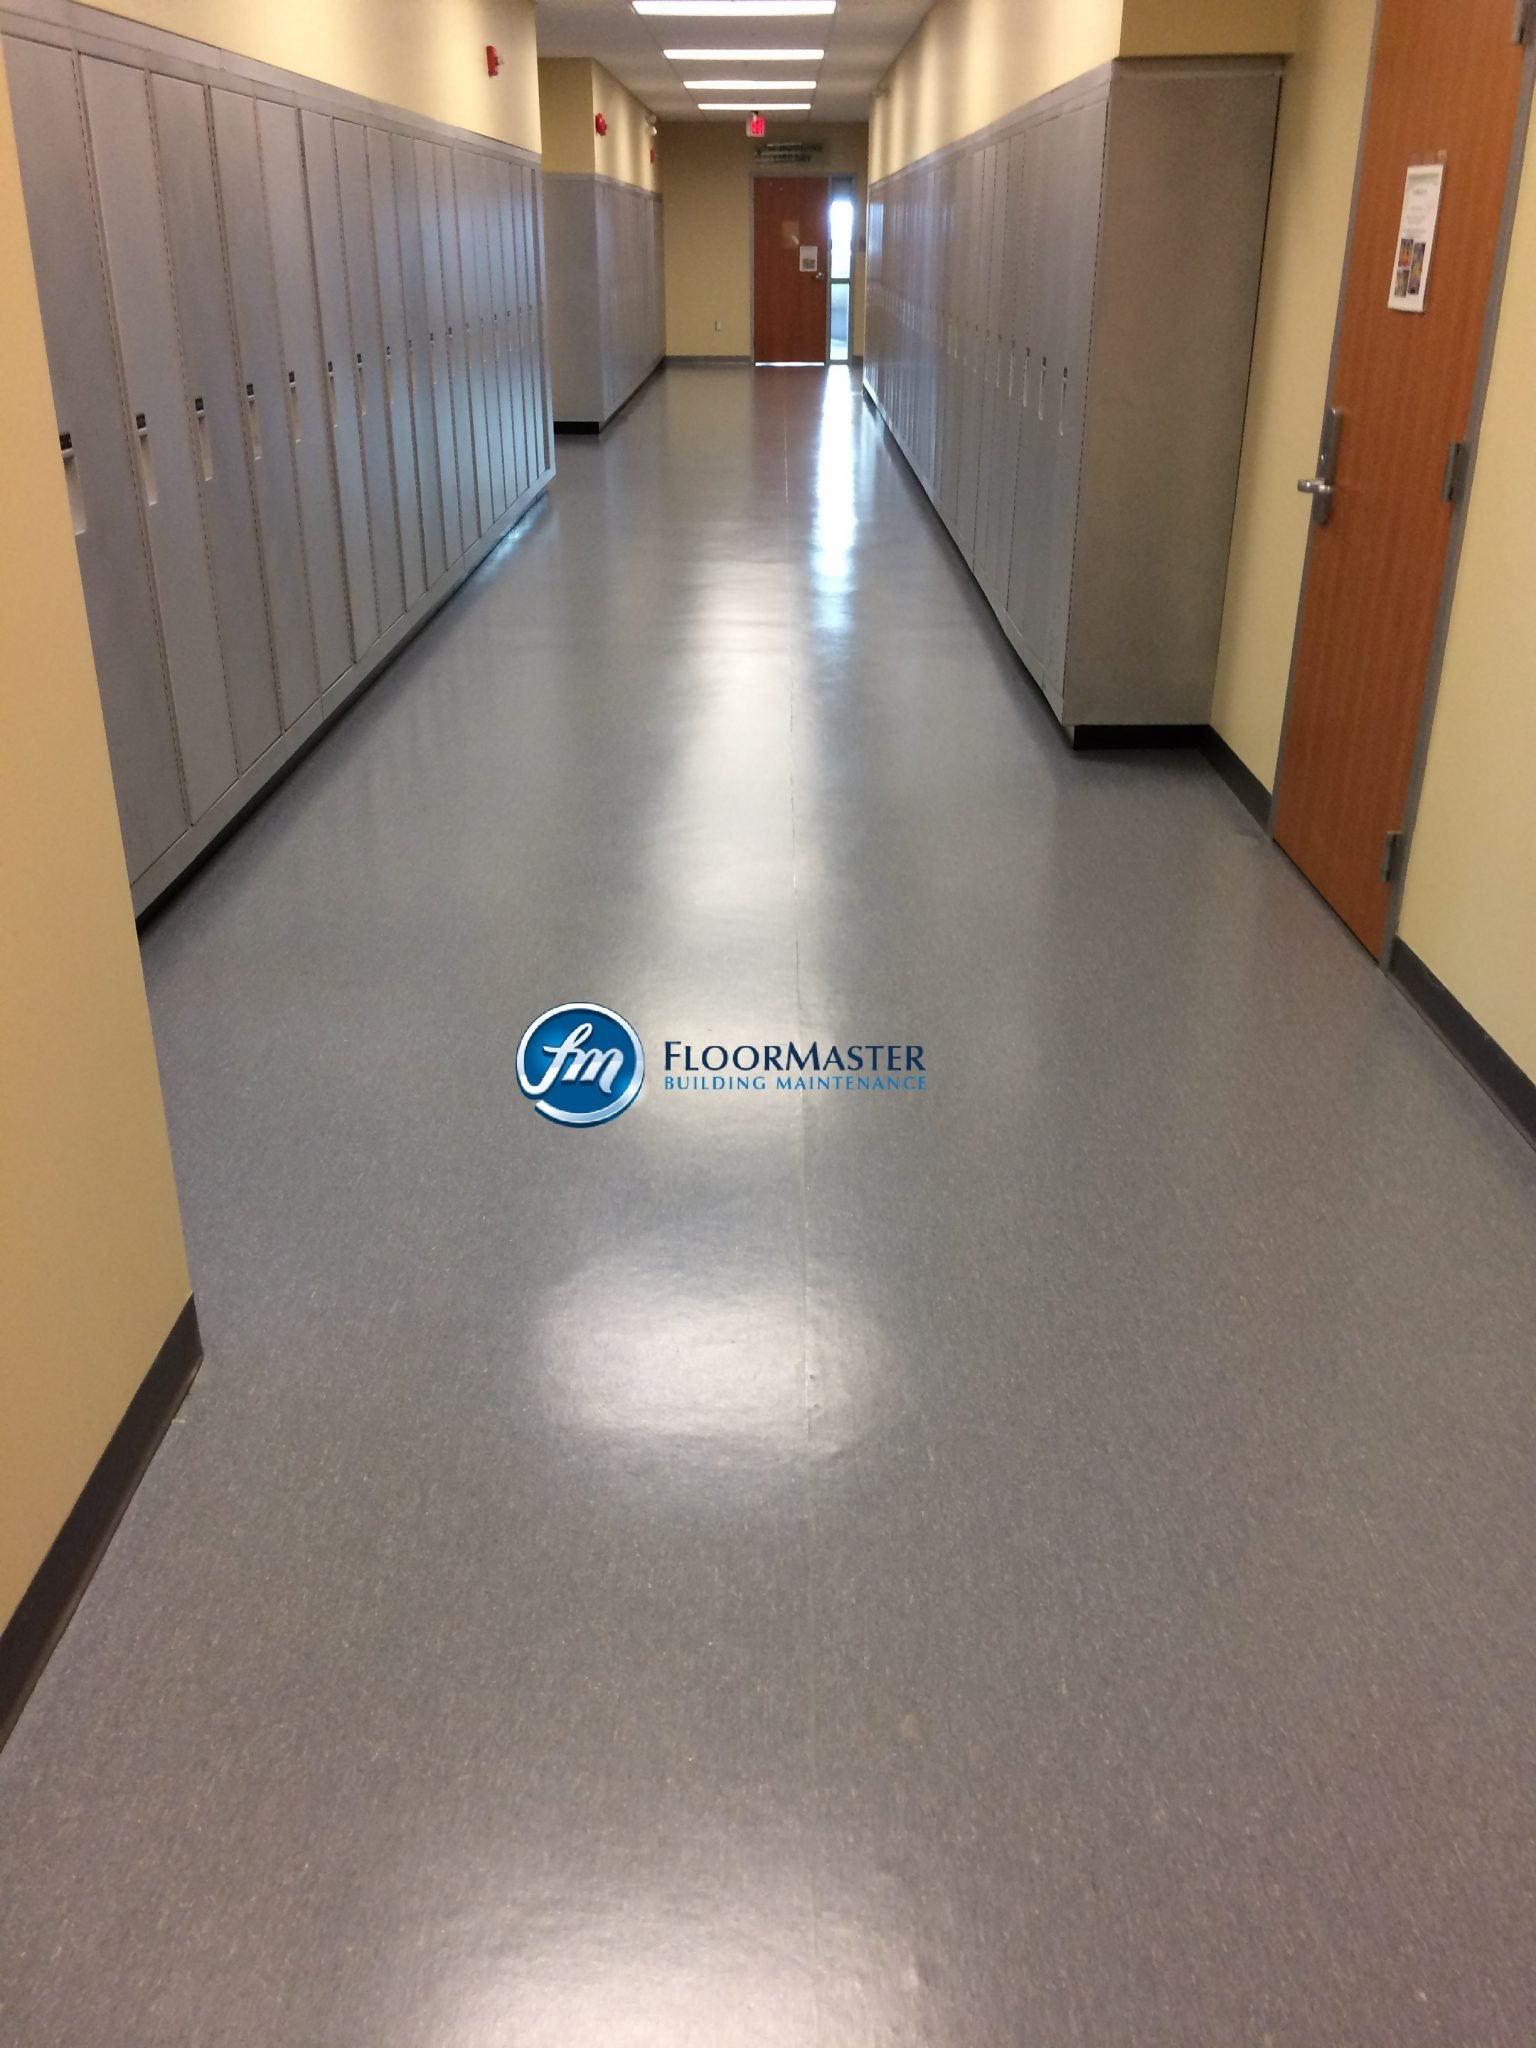 baltic city ia roll floor from products sheet design diameter iowa medical labyrinth floors the office goods linoleum kits company